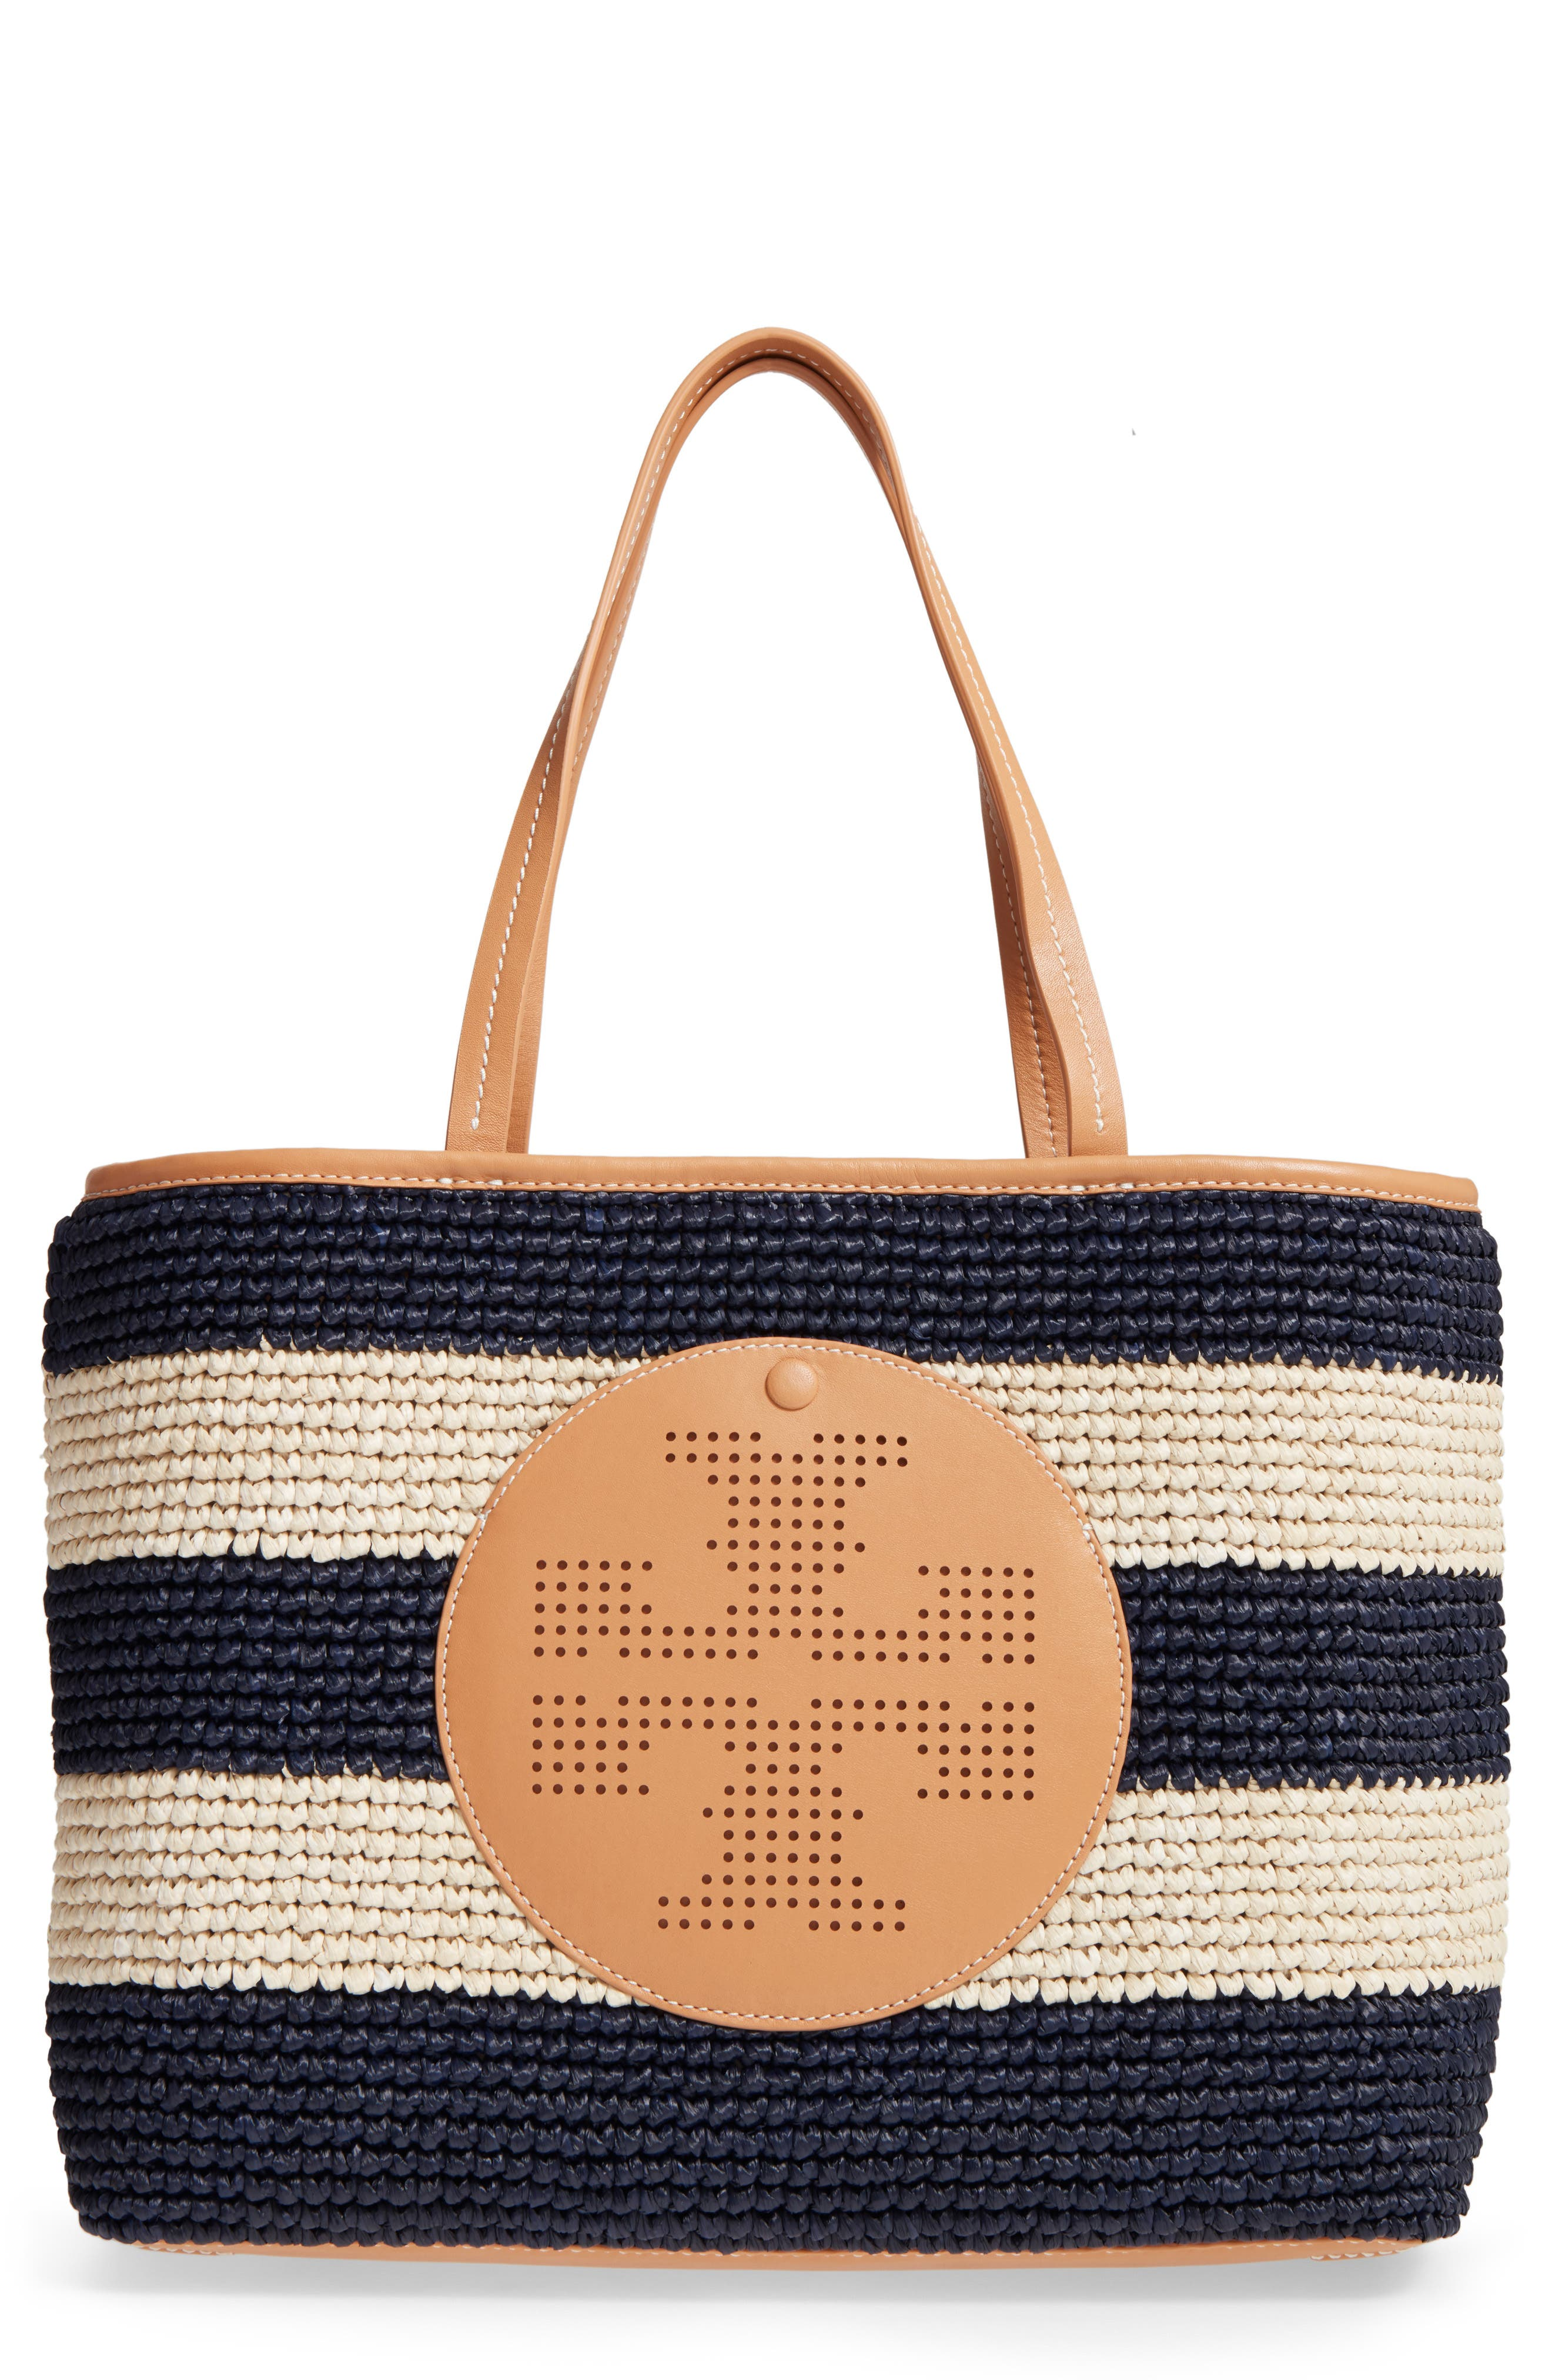 Alternate Image 1 Selected - Tory Burch Logo Straw Tote